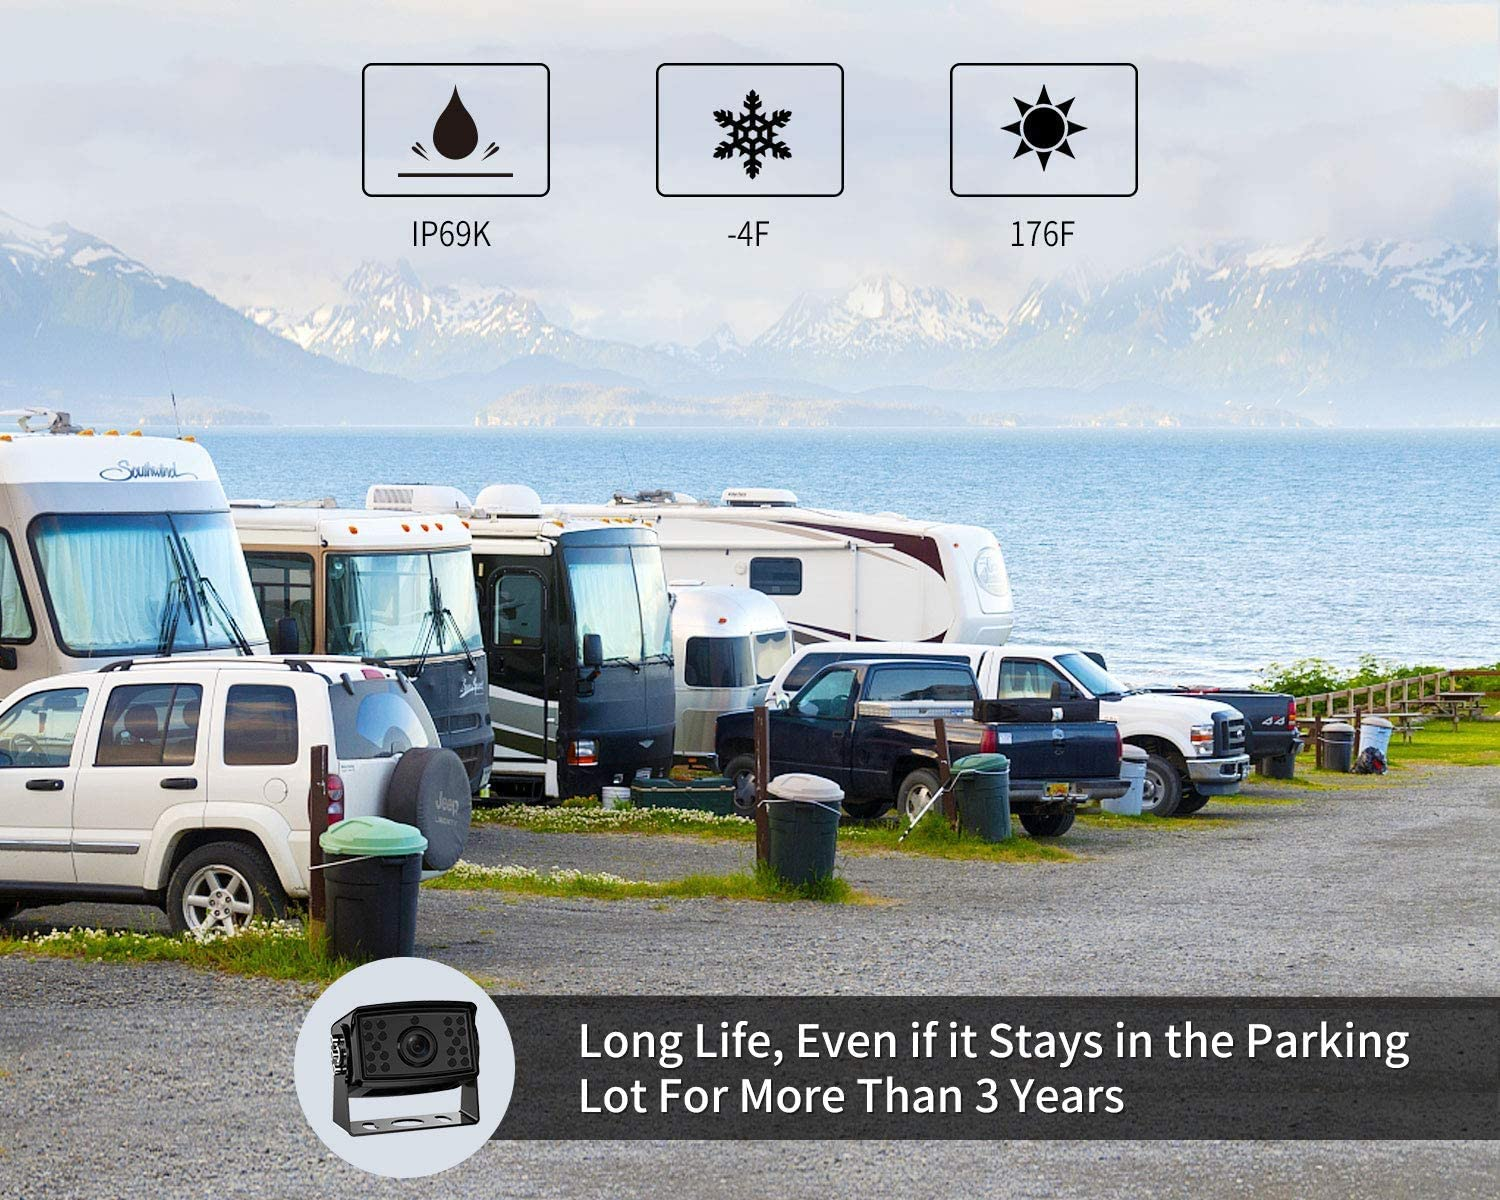 DY901-Wired Fookoo Ⅱ HD 9 Backup Camera System Kit,91080P Reversing Monitor+IP69 Waterproof Rear View Camera,Sharp CCD Chip 100/% Not Wash Up,Truck//Trailer//Box Truck//RV